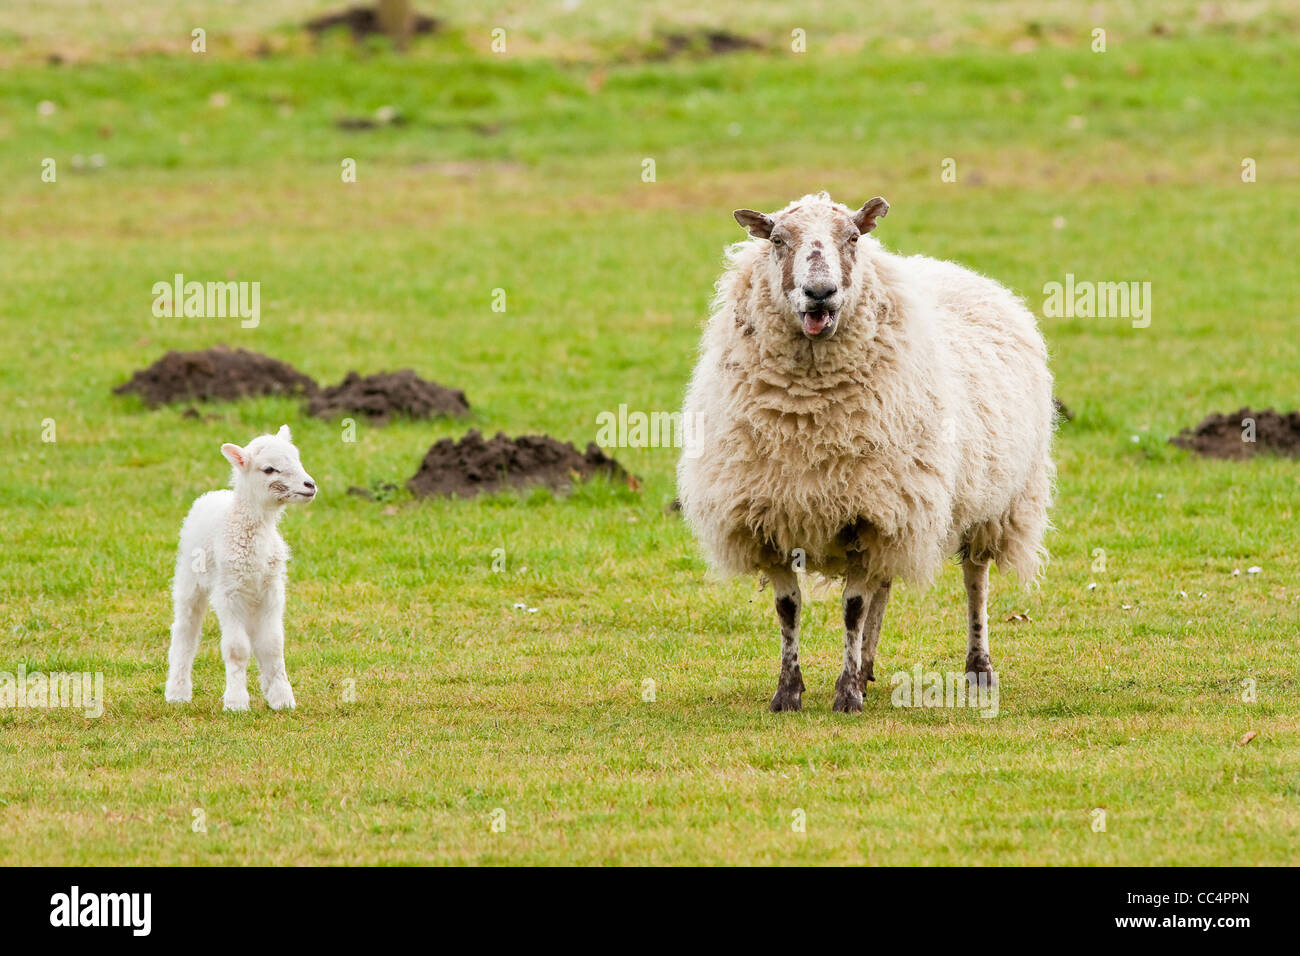 Mother Ewe Bleating With New Born Lamb Looking - Stock Image